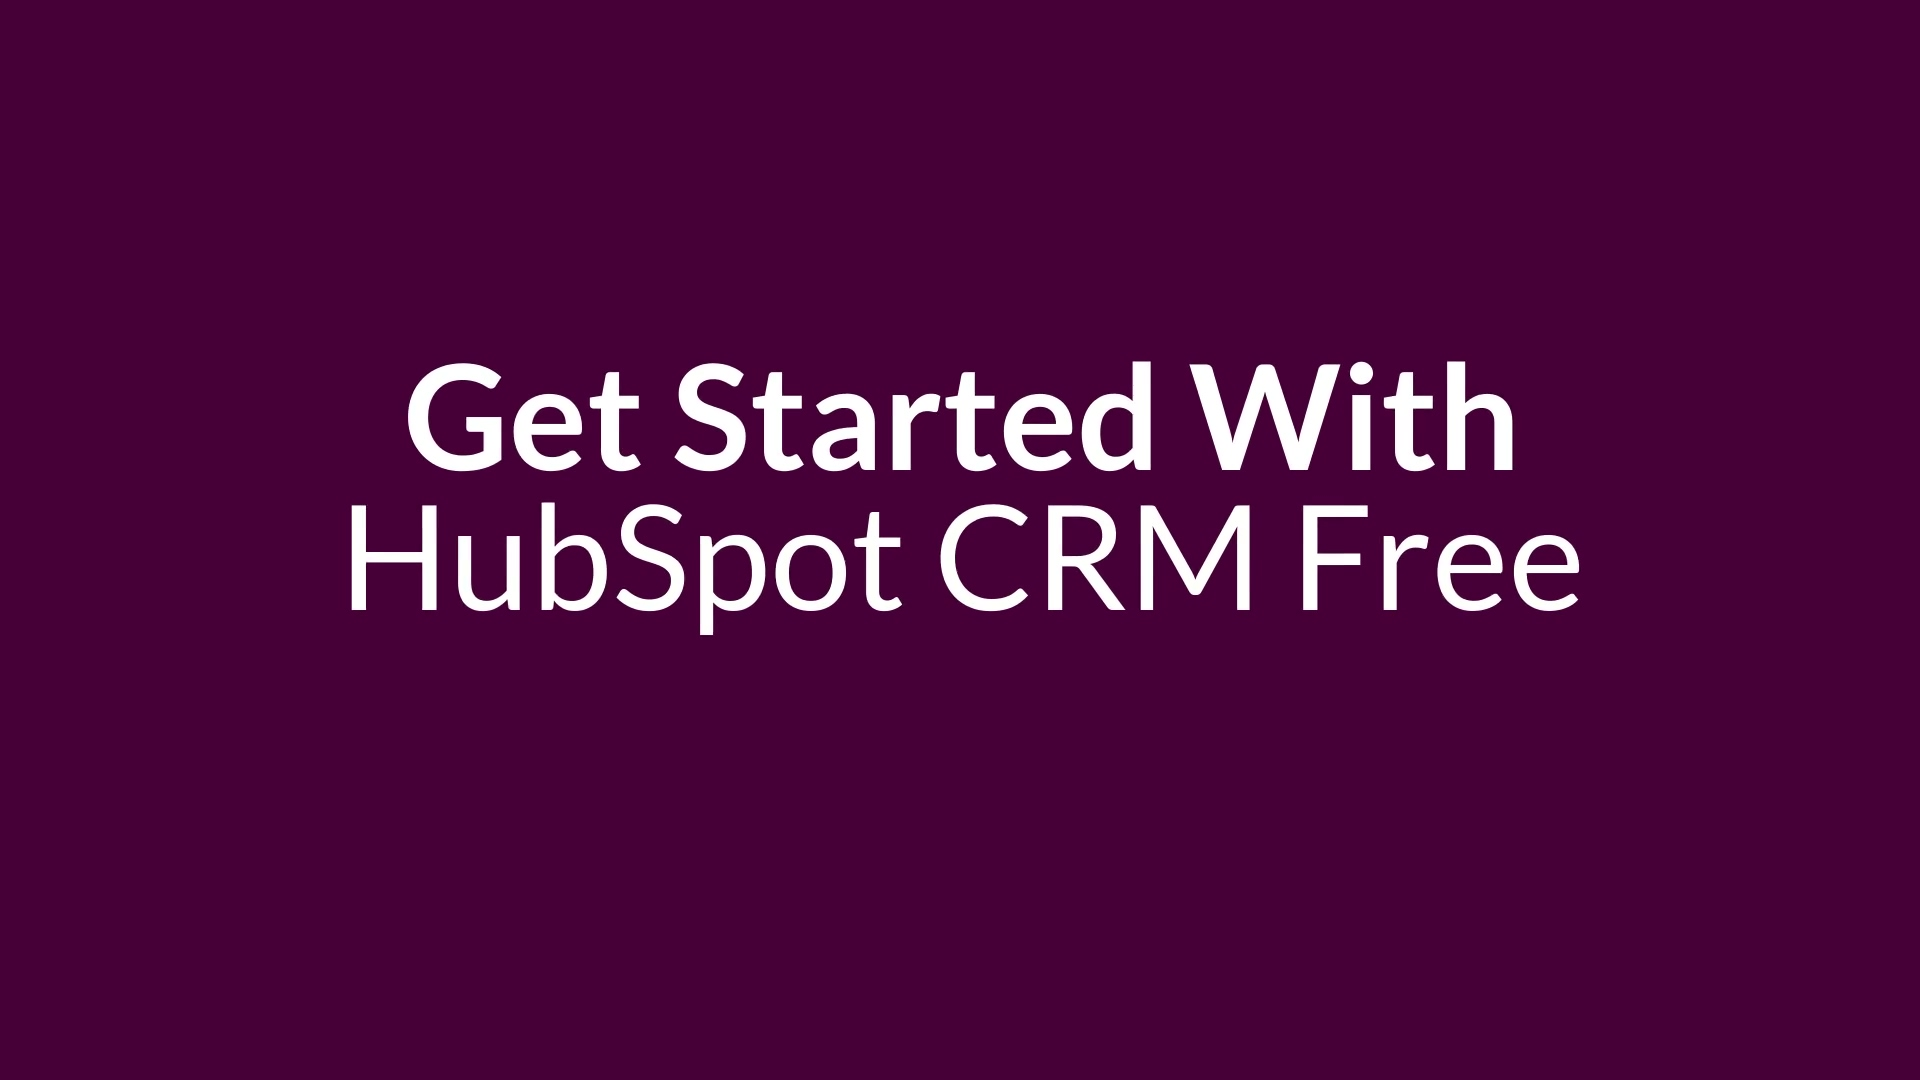 LG - How To Sign Up To HubSpot CRM Free